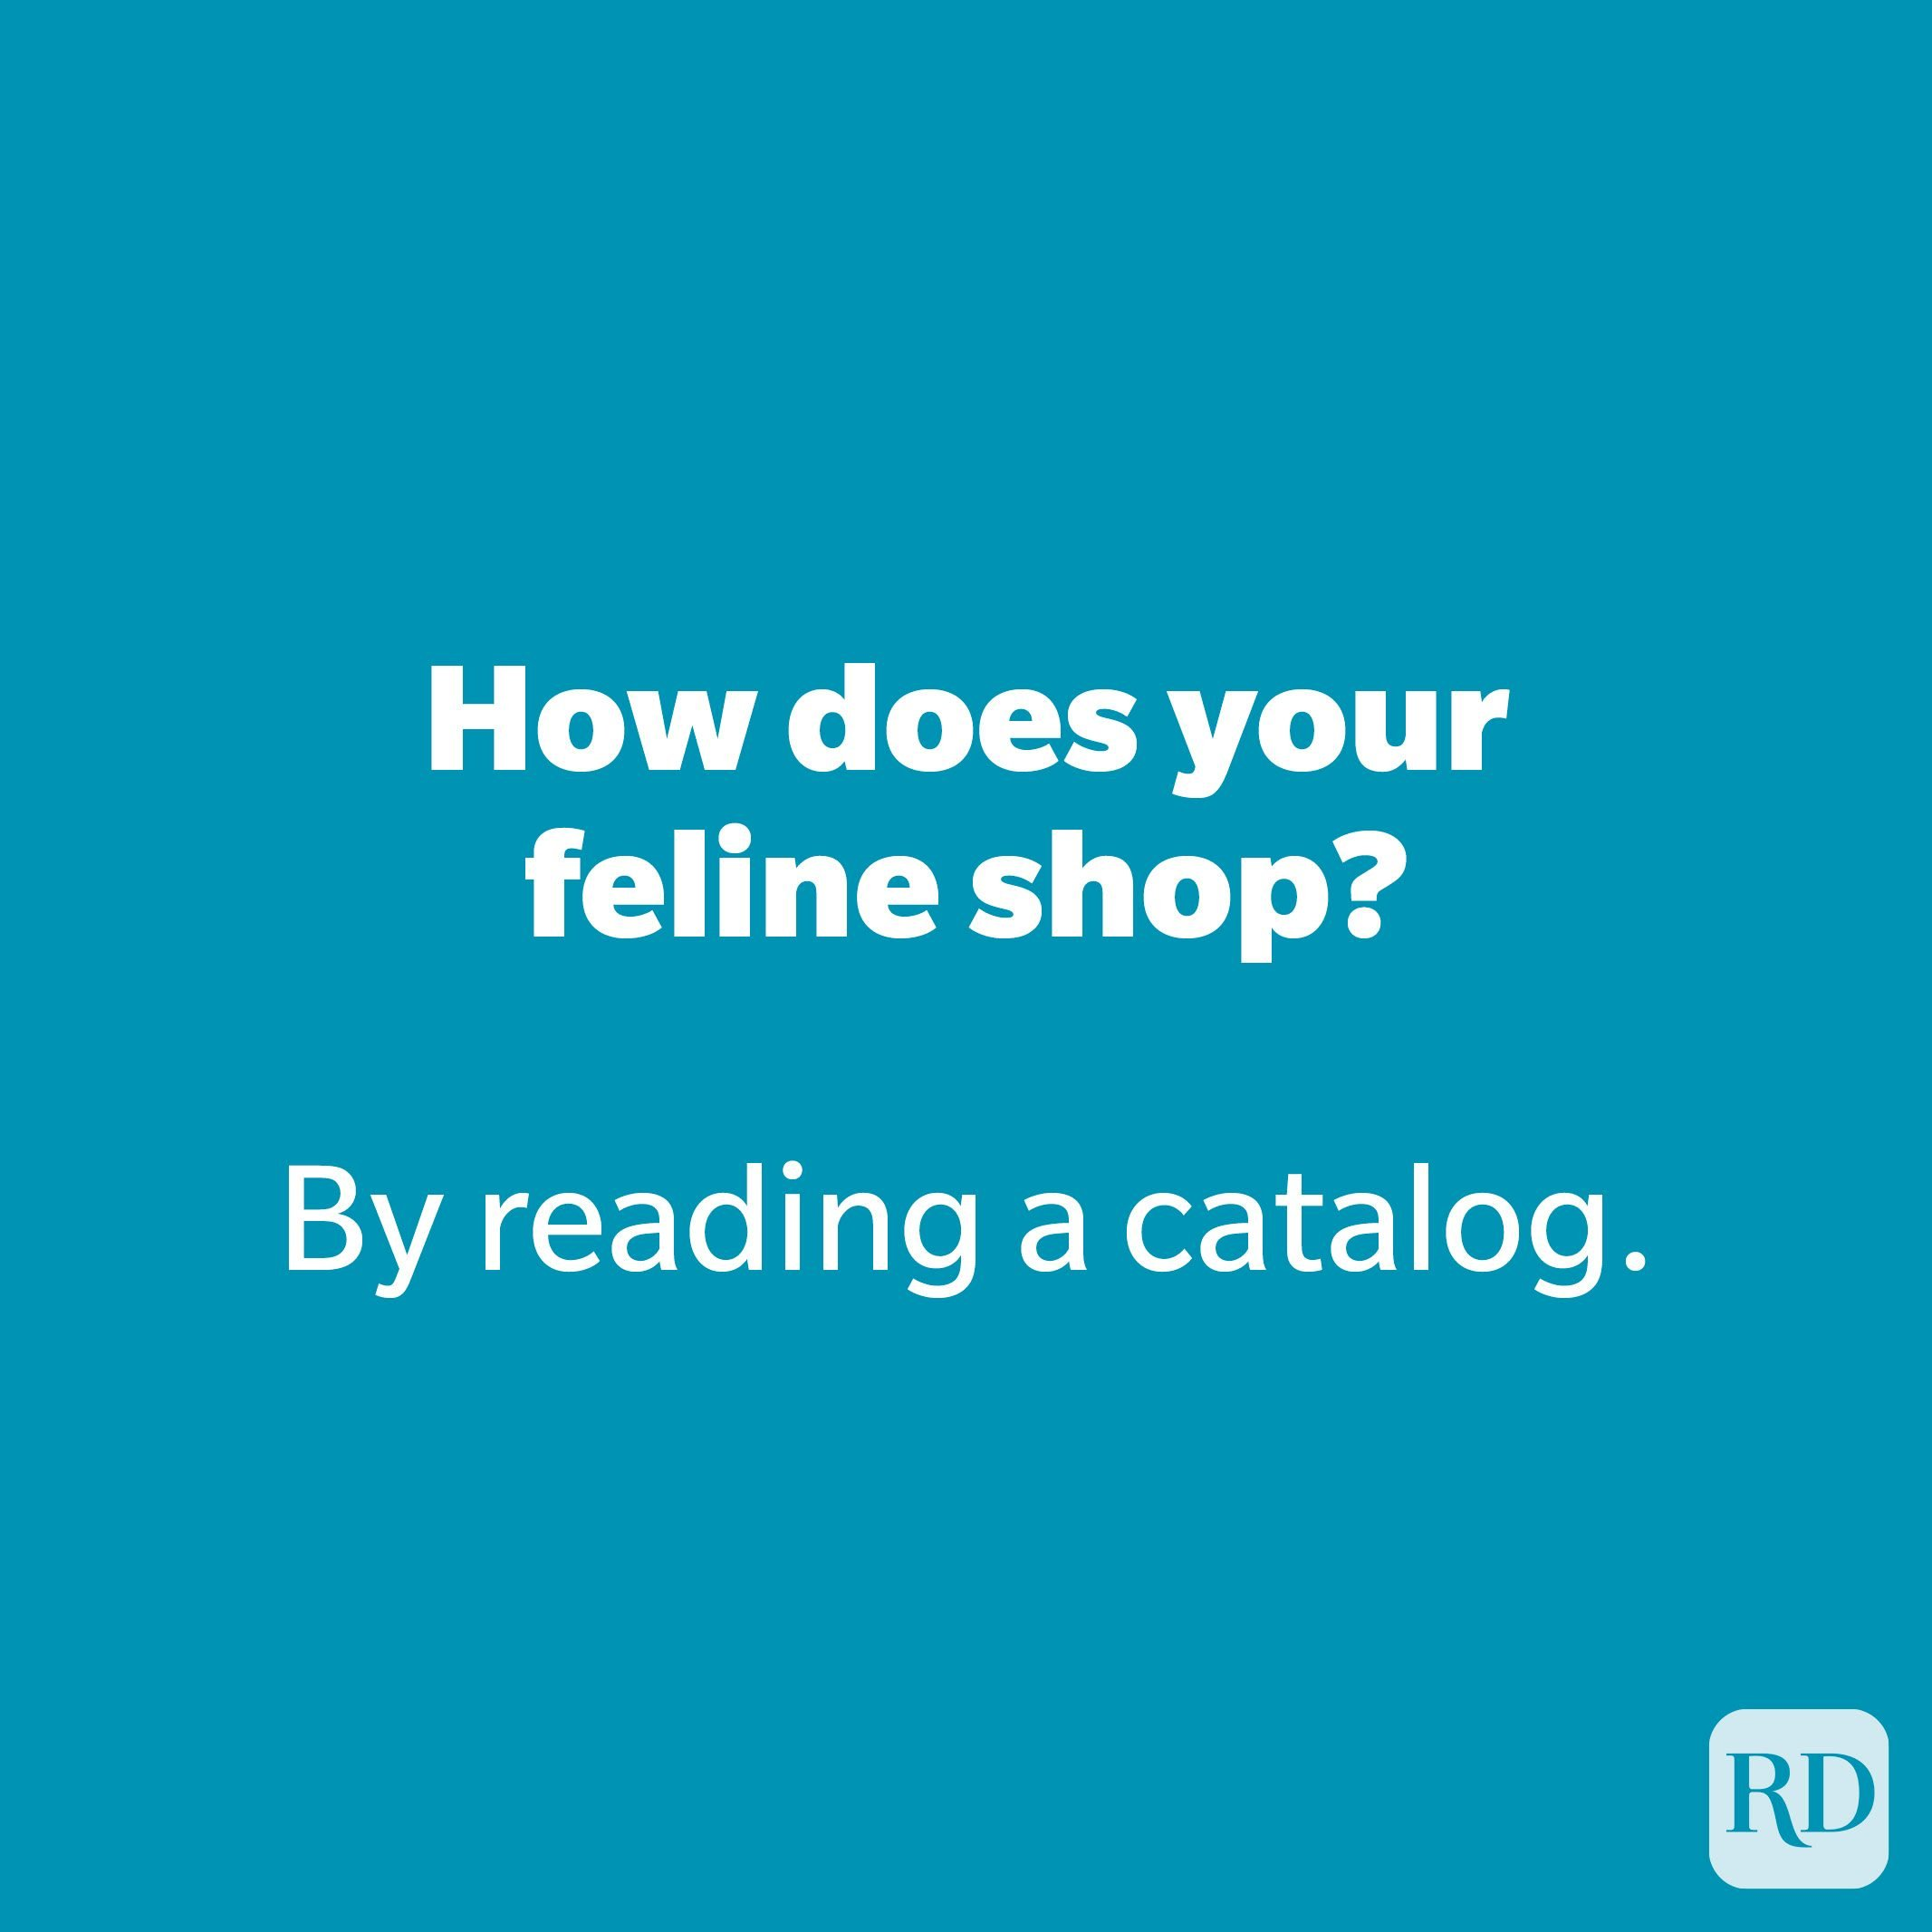 How does your feline shop?